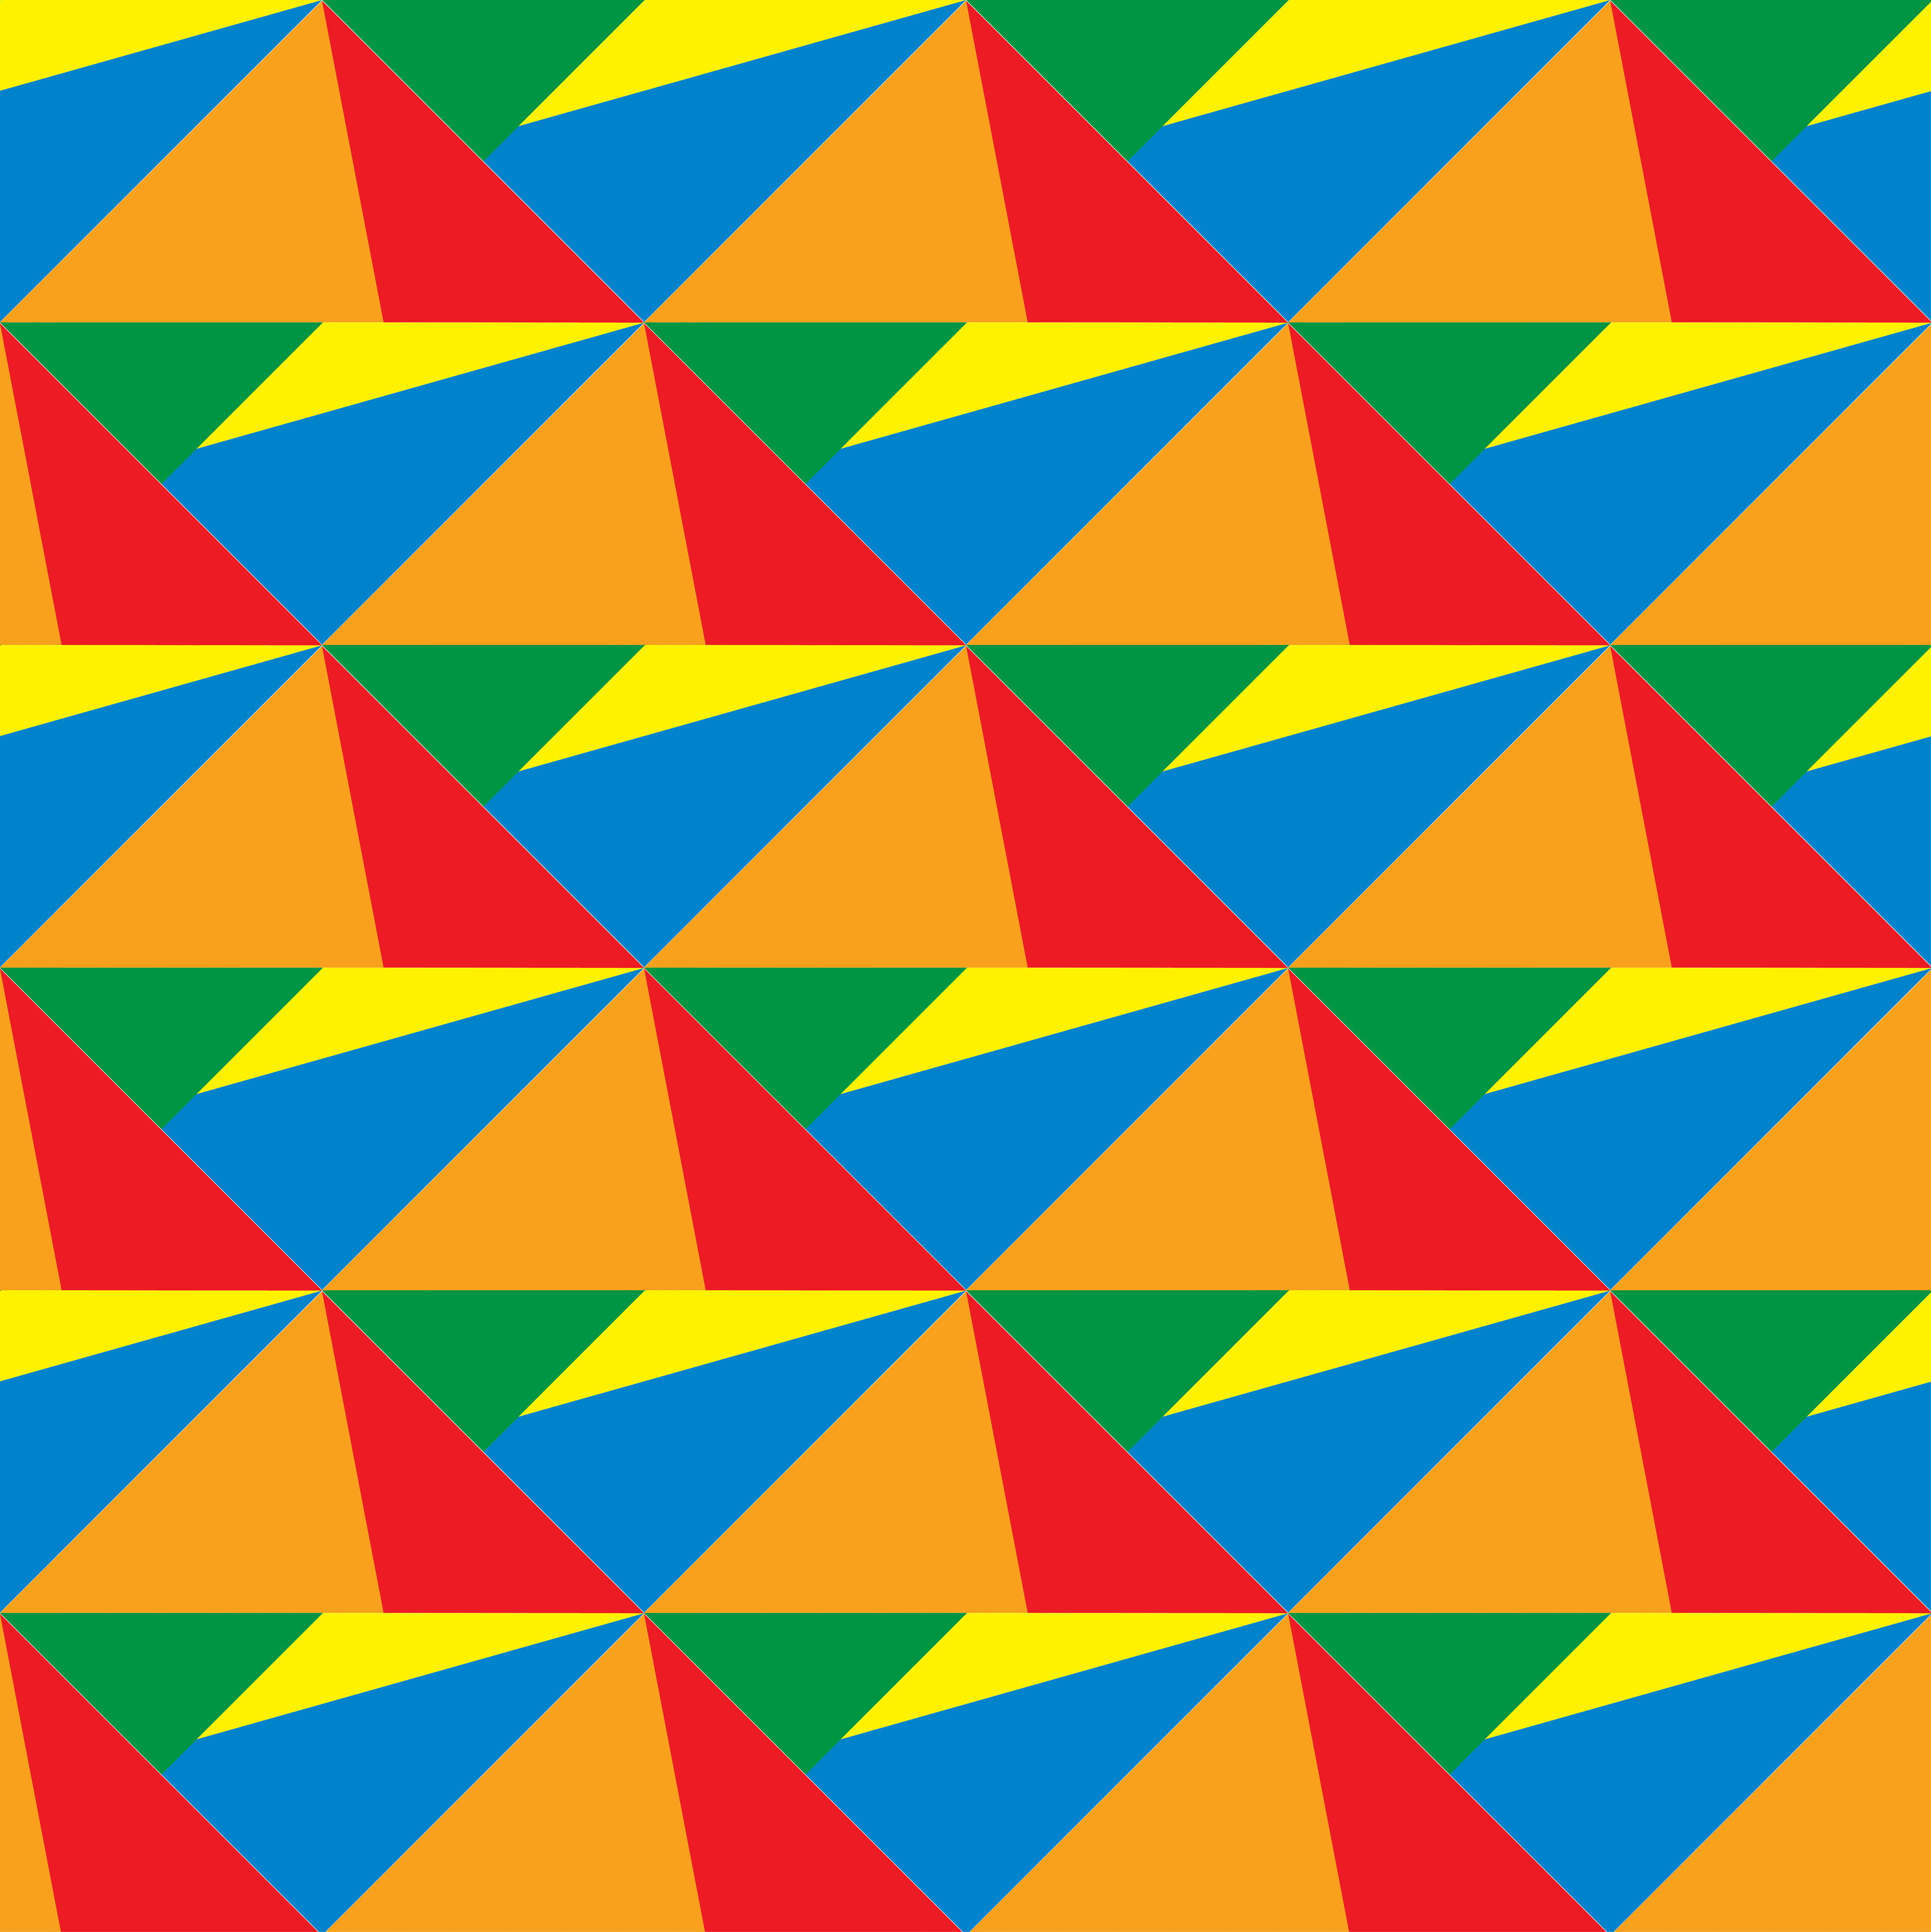 Colorful geometric shapes 3d pattern - Download Free